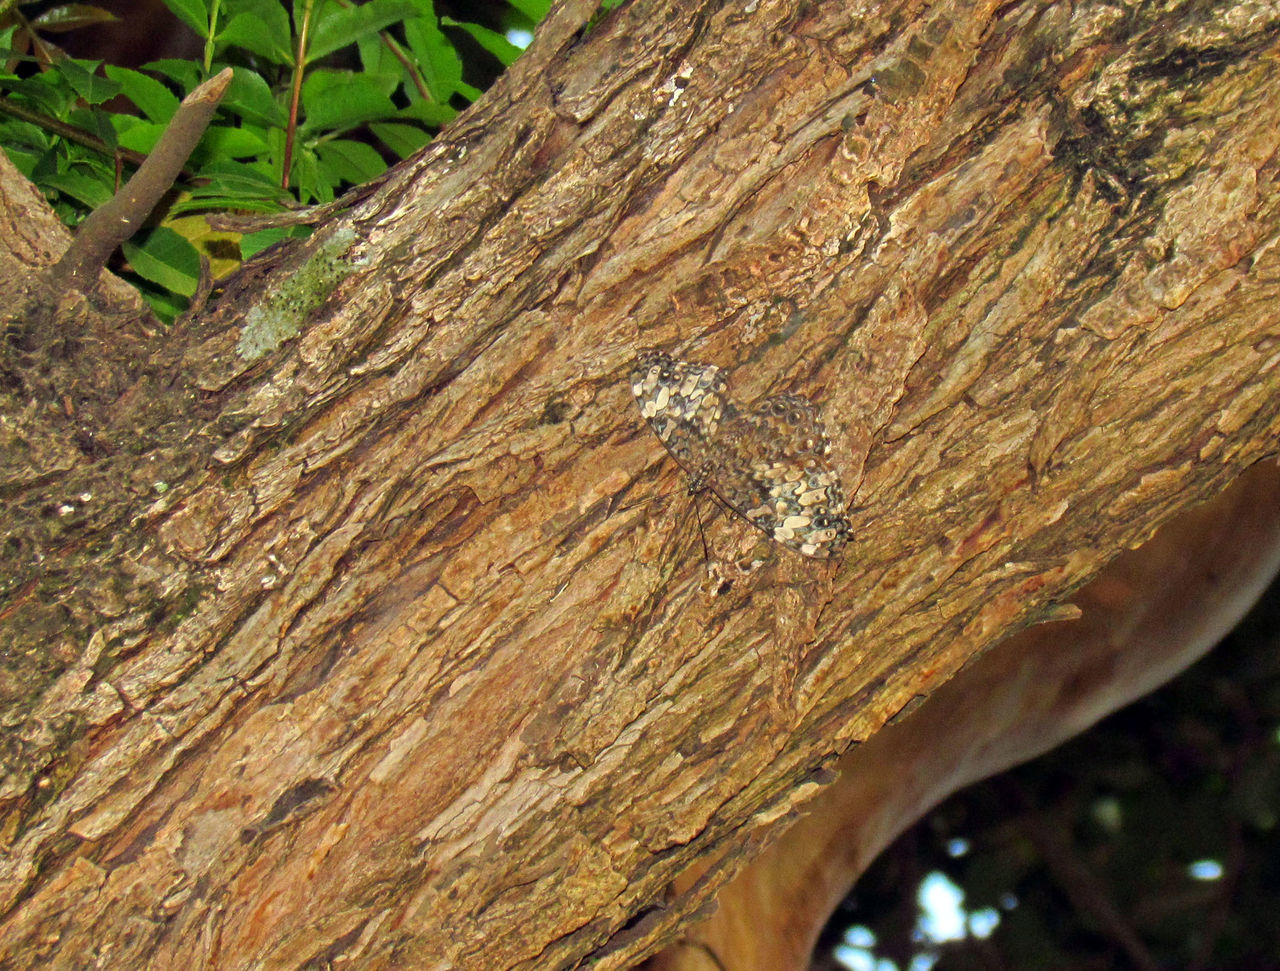 tree trunk, tree, close-up, nature, outdoors, day, textured, no people, bark, wood - material, growth